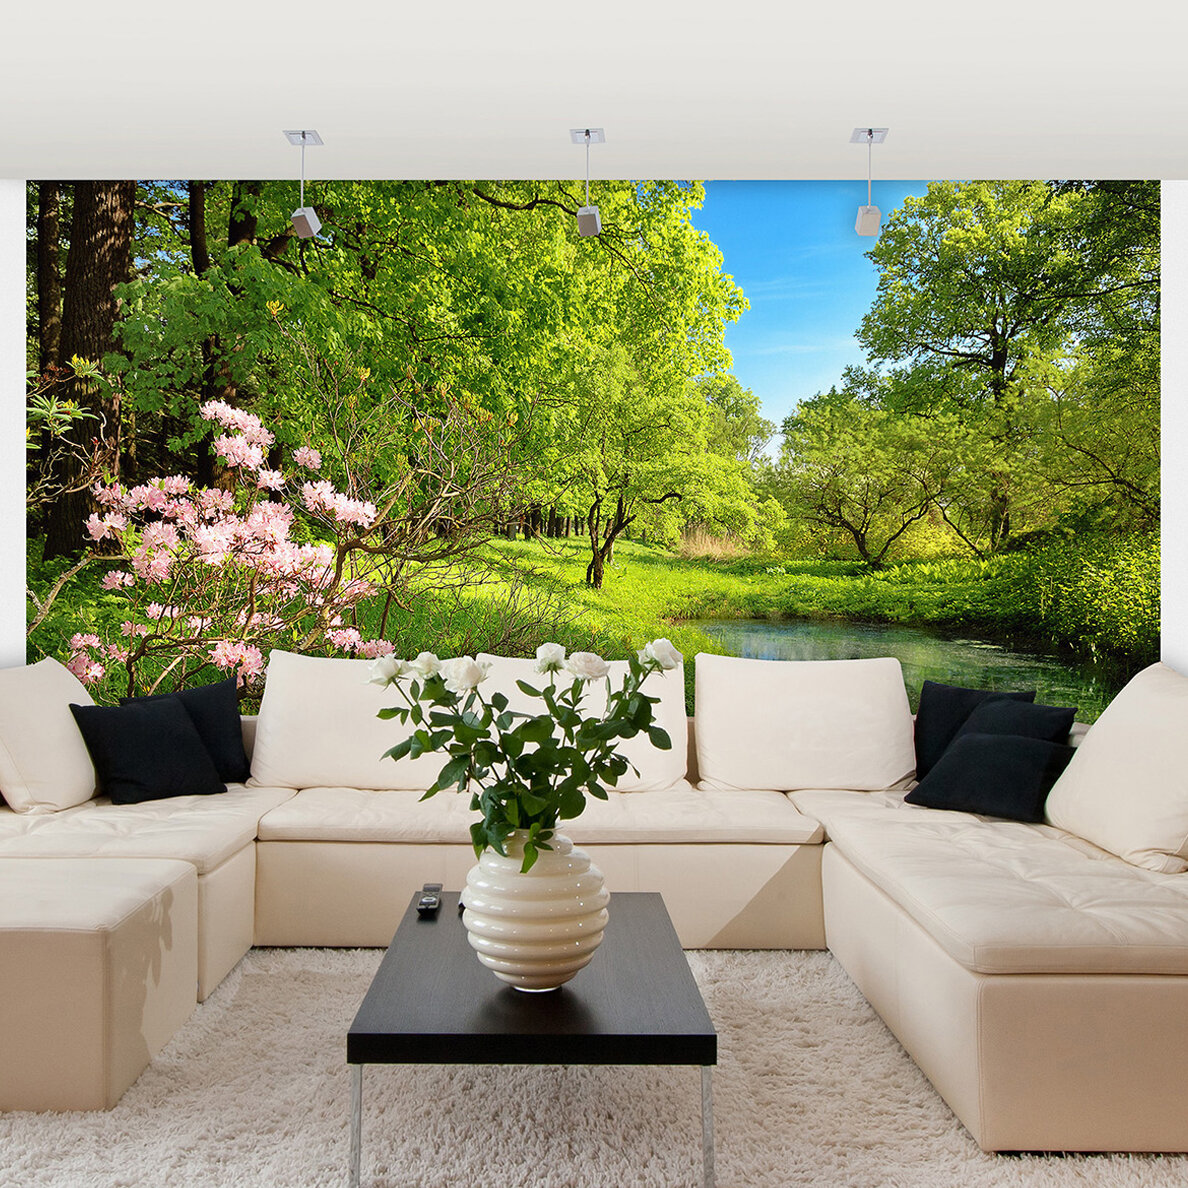 Union Rustic Motter Park In The Spring 8 4 L X 144 W 8 Panel Wall Mural Wayfair